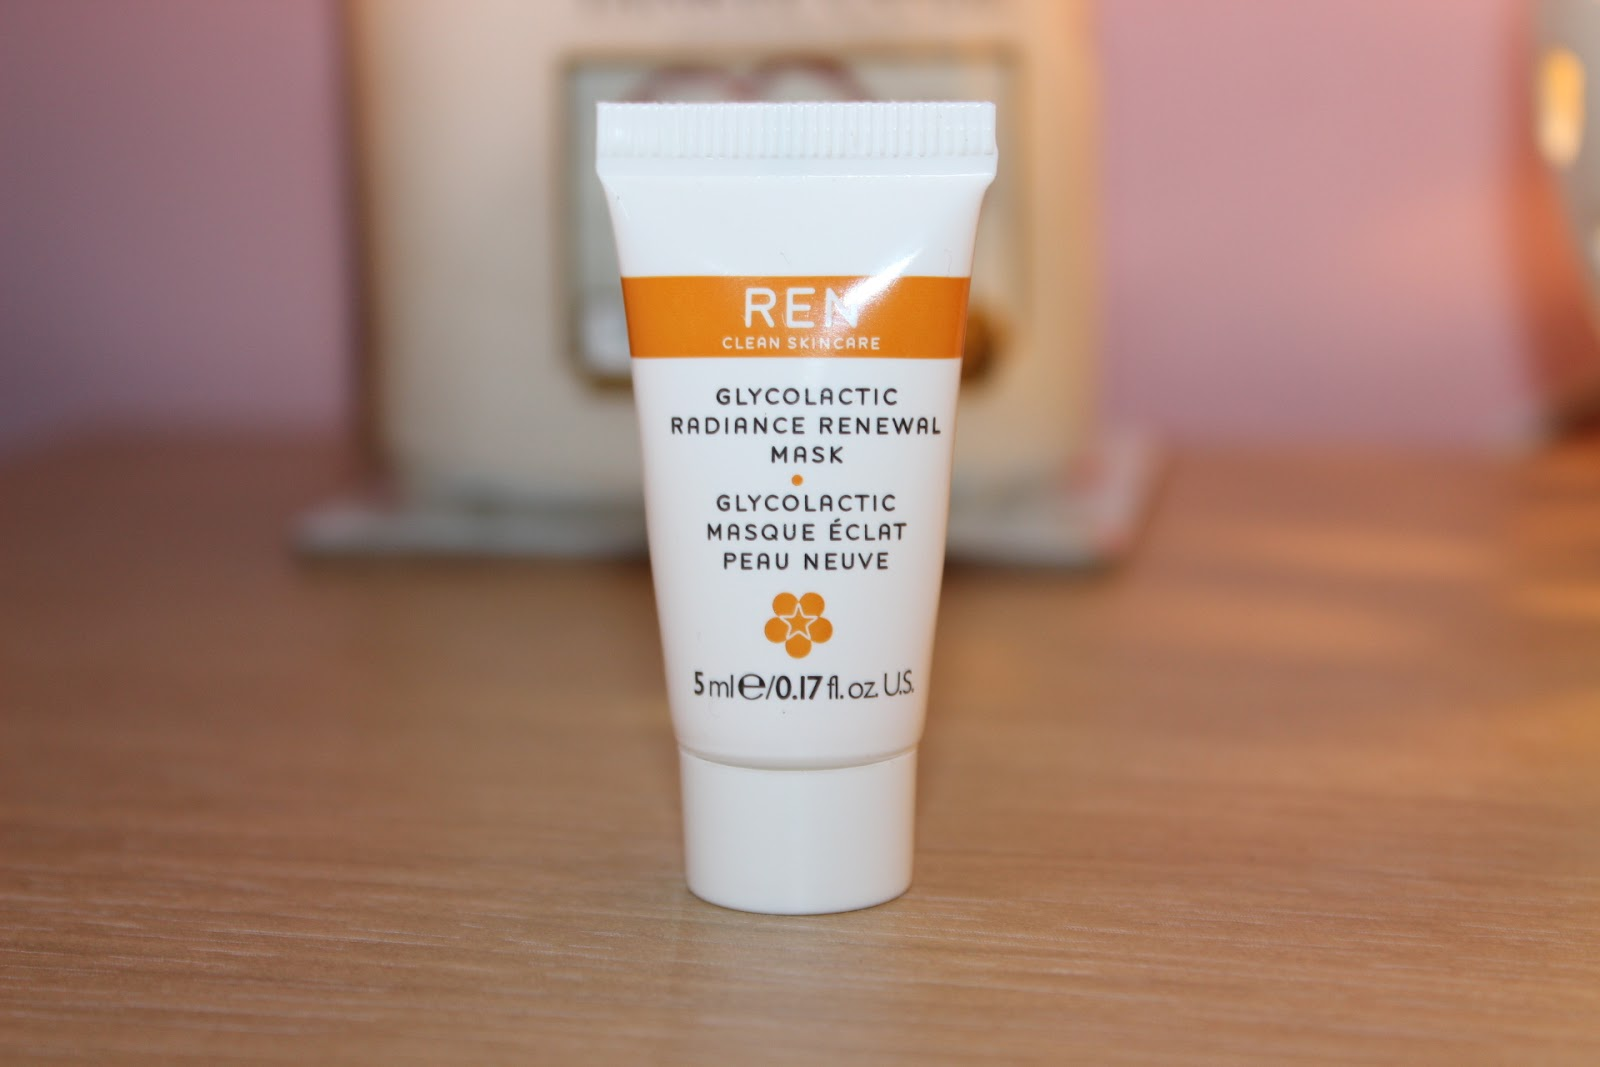 REN Glycolatic Radiance Renewal Mask